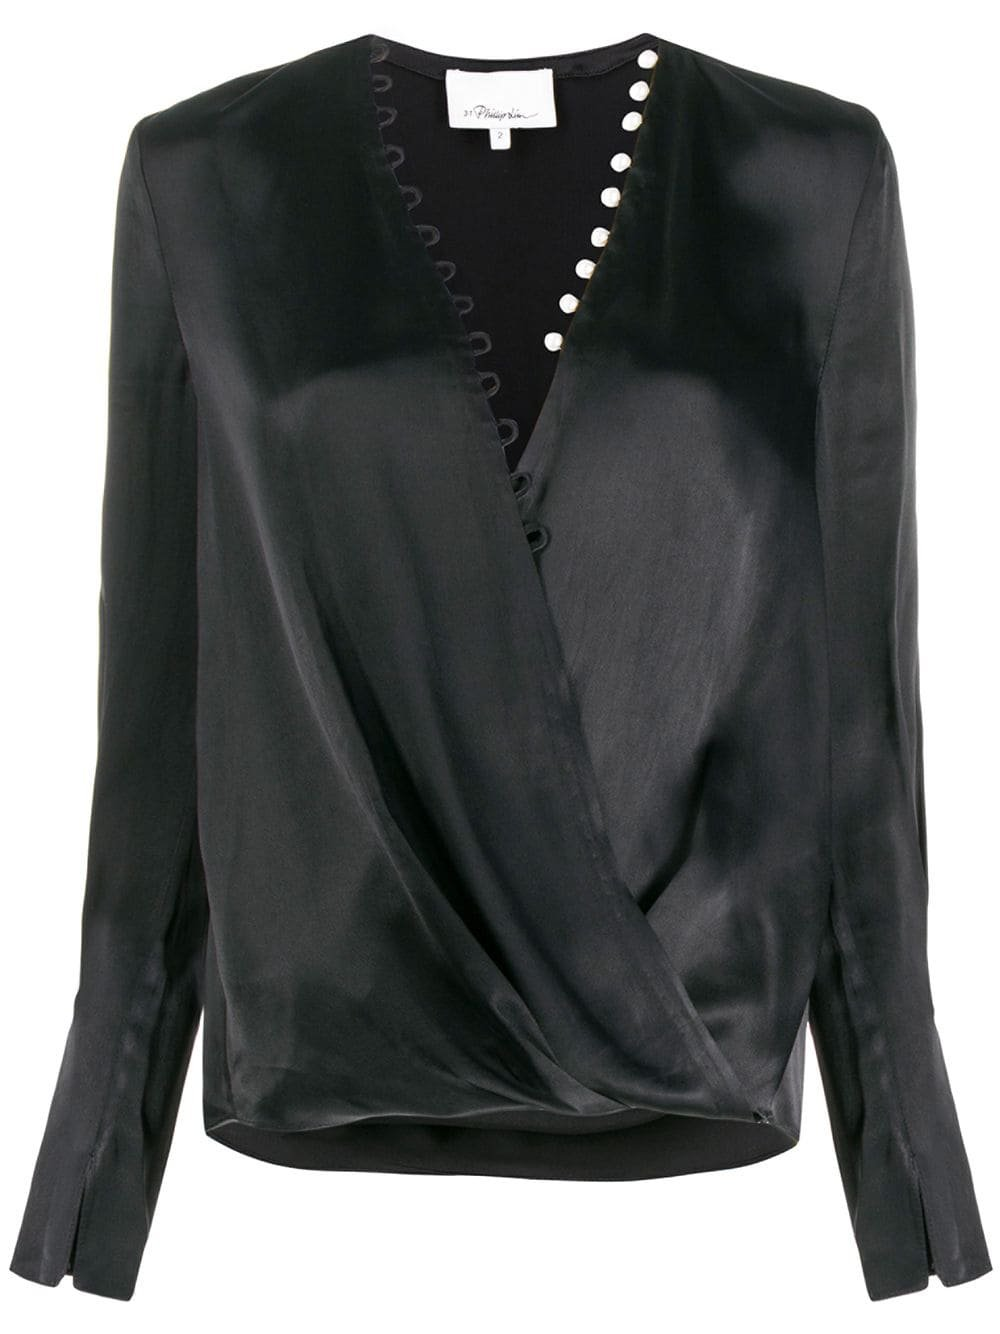 Black 3.1 Phillip Lim Pearl Embellished Blouse | Farfetch.com